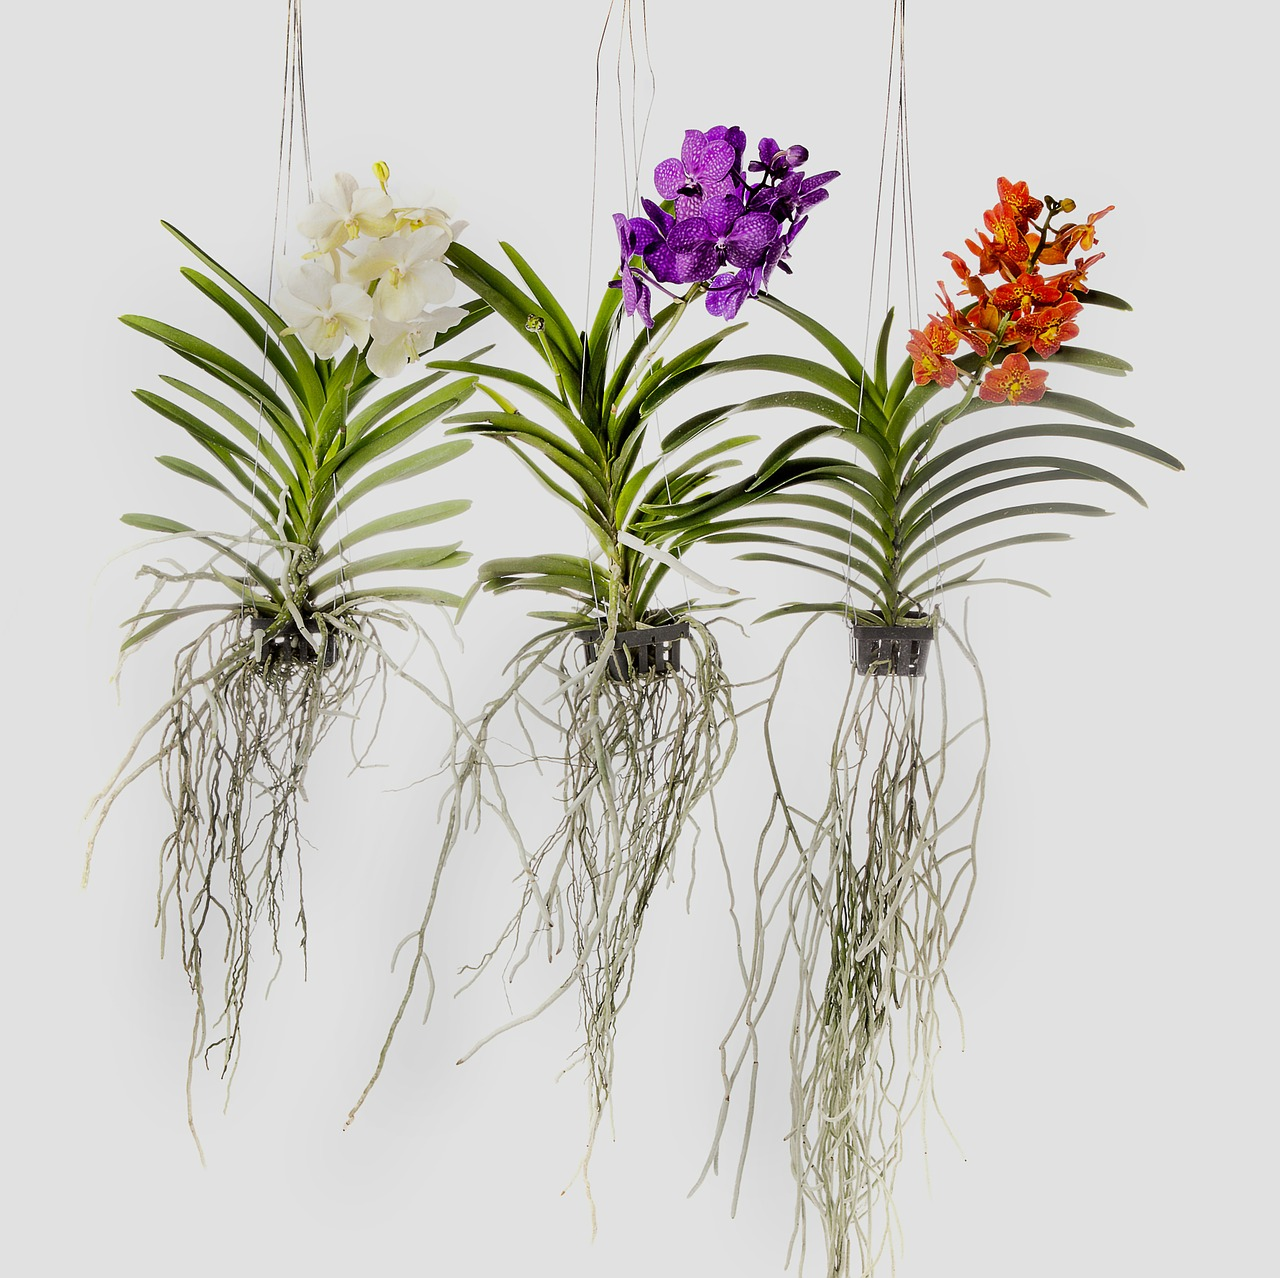 Vanda The Original Indian Name For Orchids Grows In Regions Ranging From India To Phillipines And Consists Of About 60 Species Plant Is An